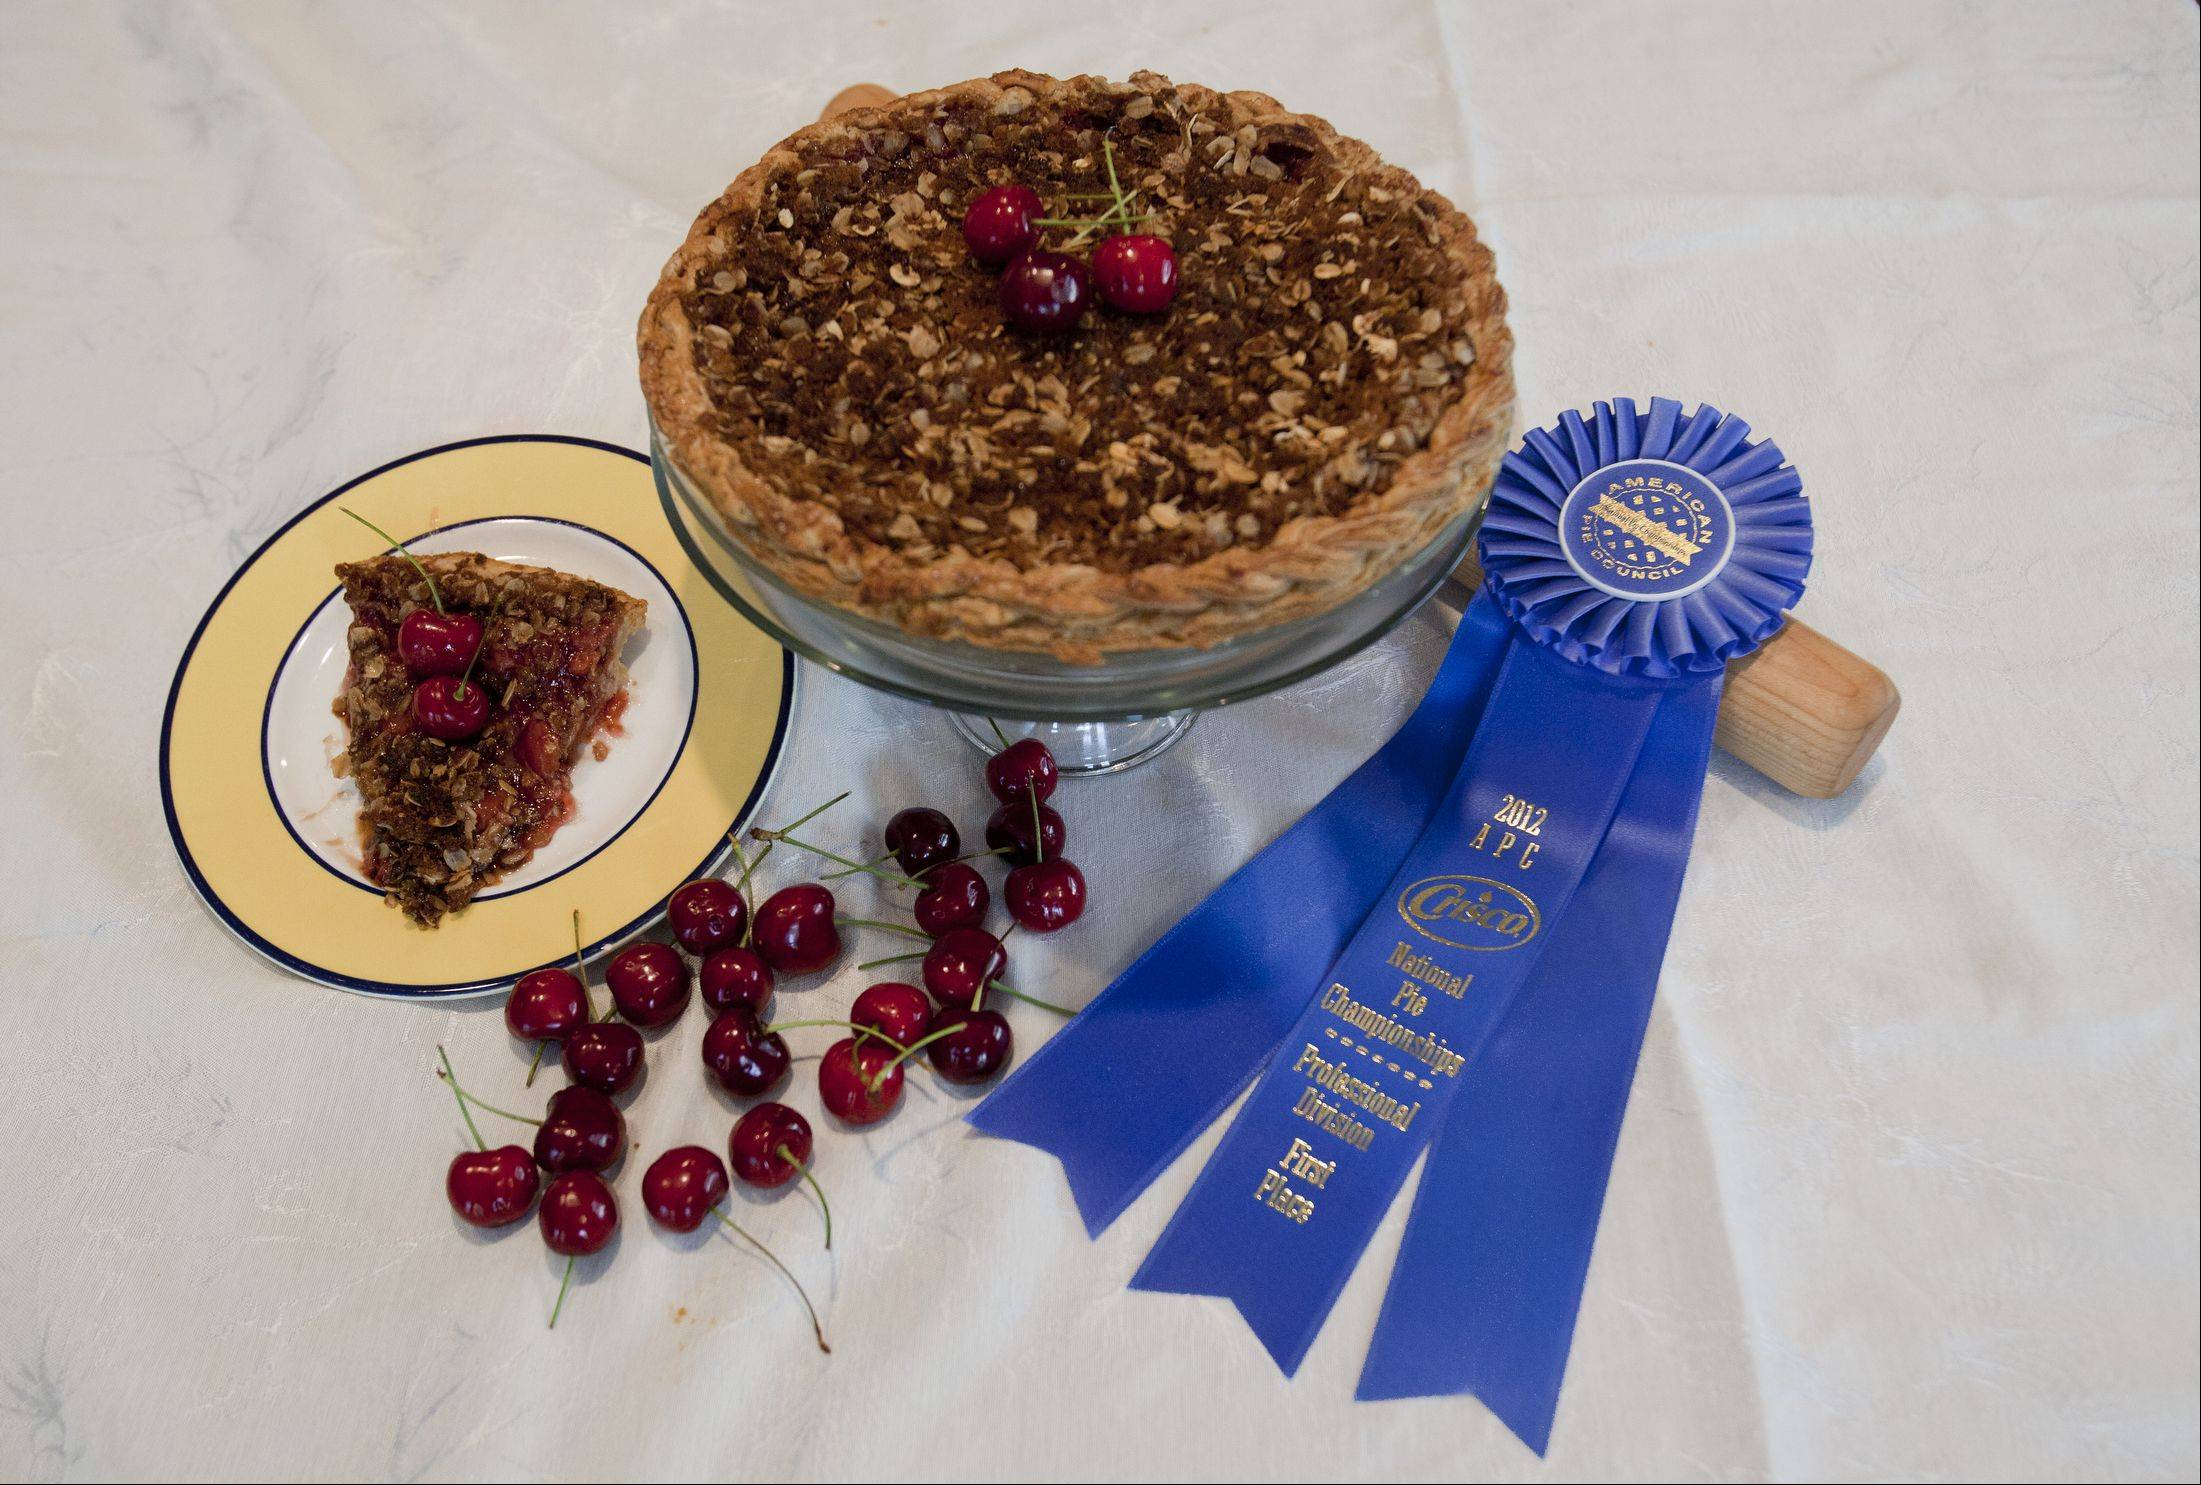 Chef Matt Zagorski won a blue ribbon for his oatmeal-topped cherry pie at the American Pie Council/Crisco National Pie Championship earlier this year.